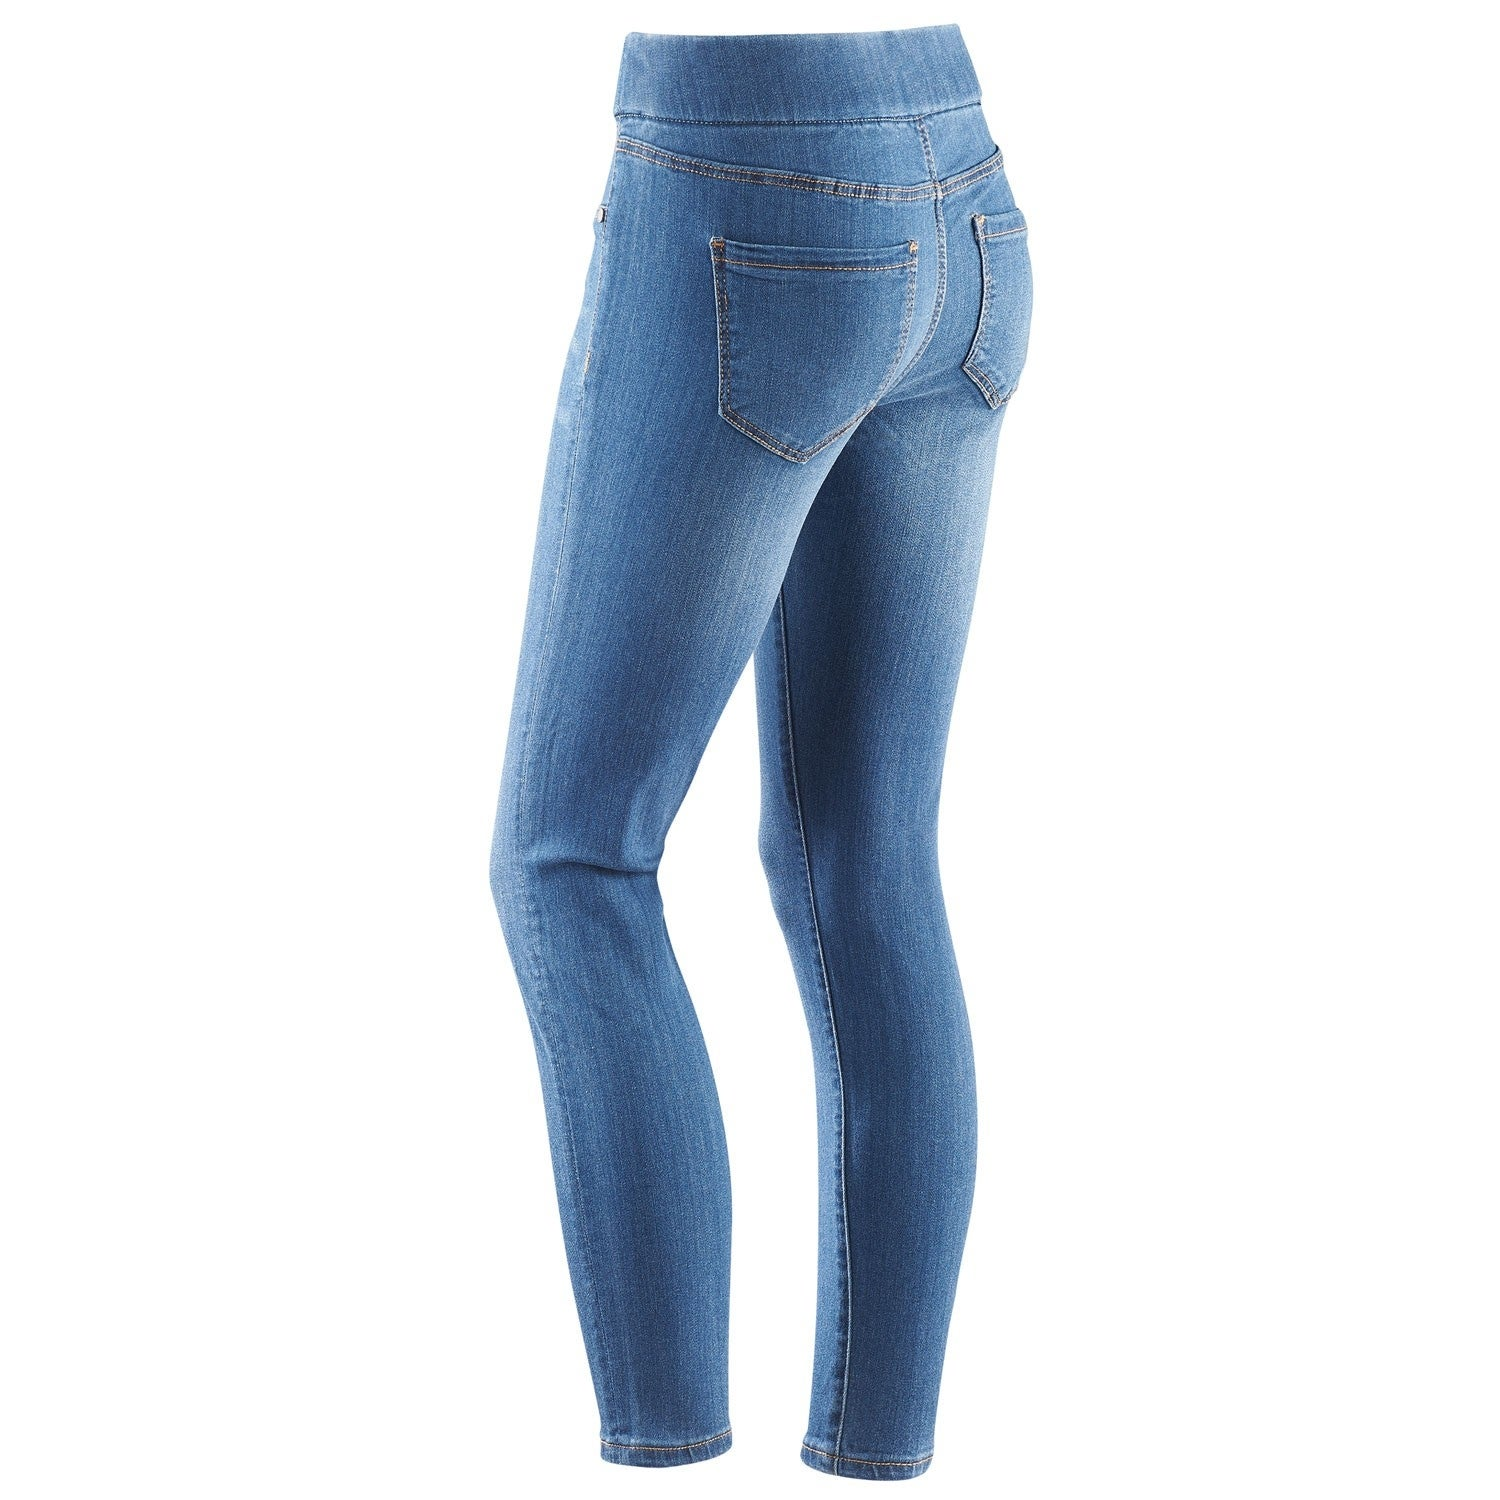 41935aefc7843 Shop Liverpool Jeans Company Women's Pull-On Ankle Length Denim Pants -  Free Shipping Today - Overstock - 20652877